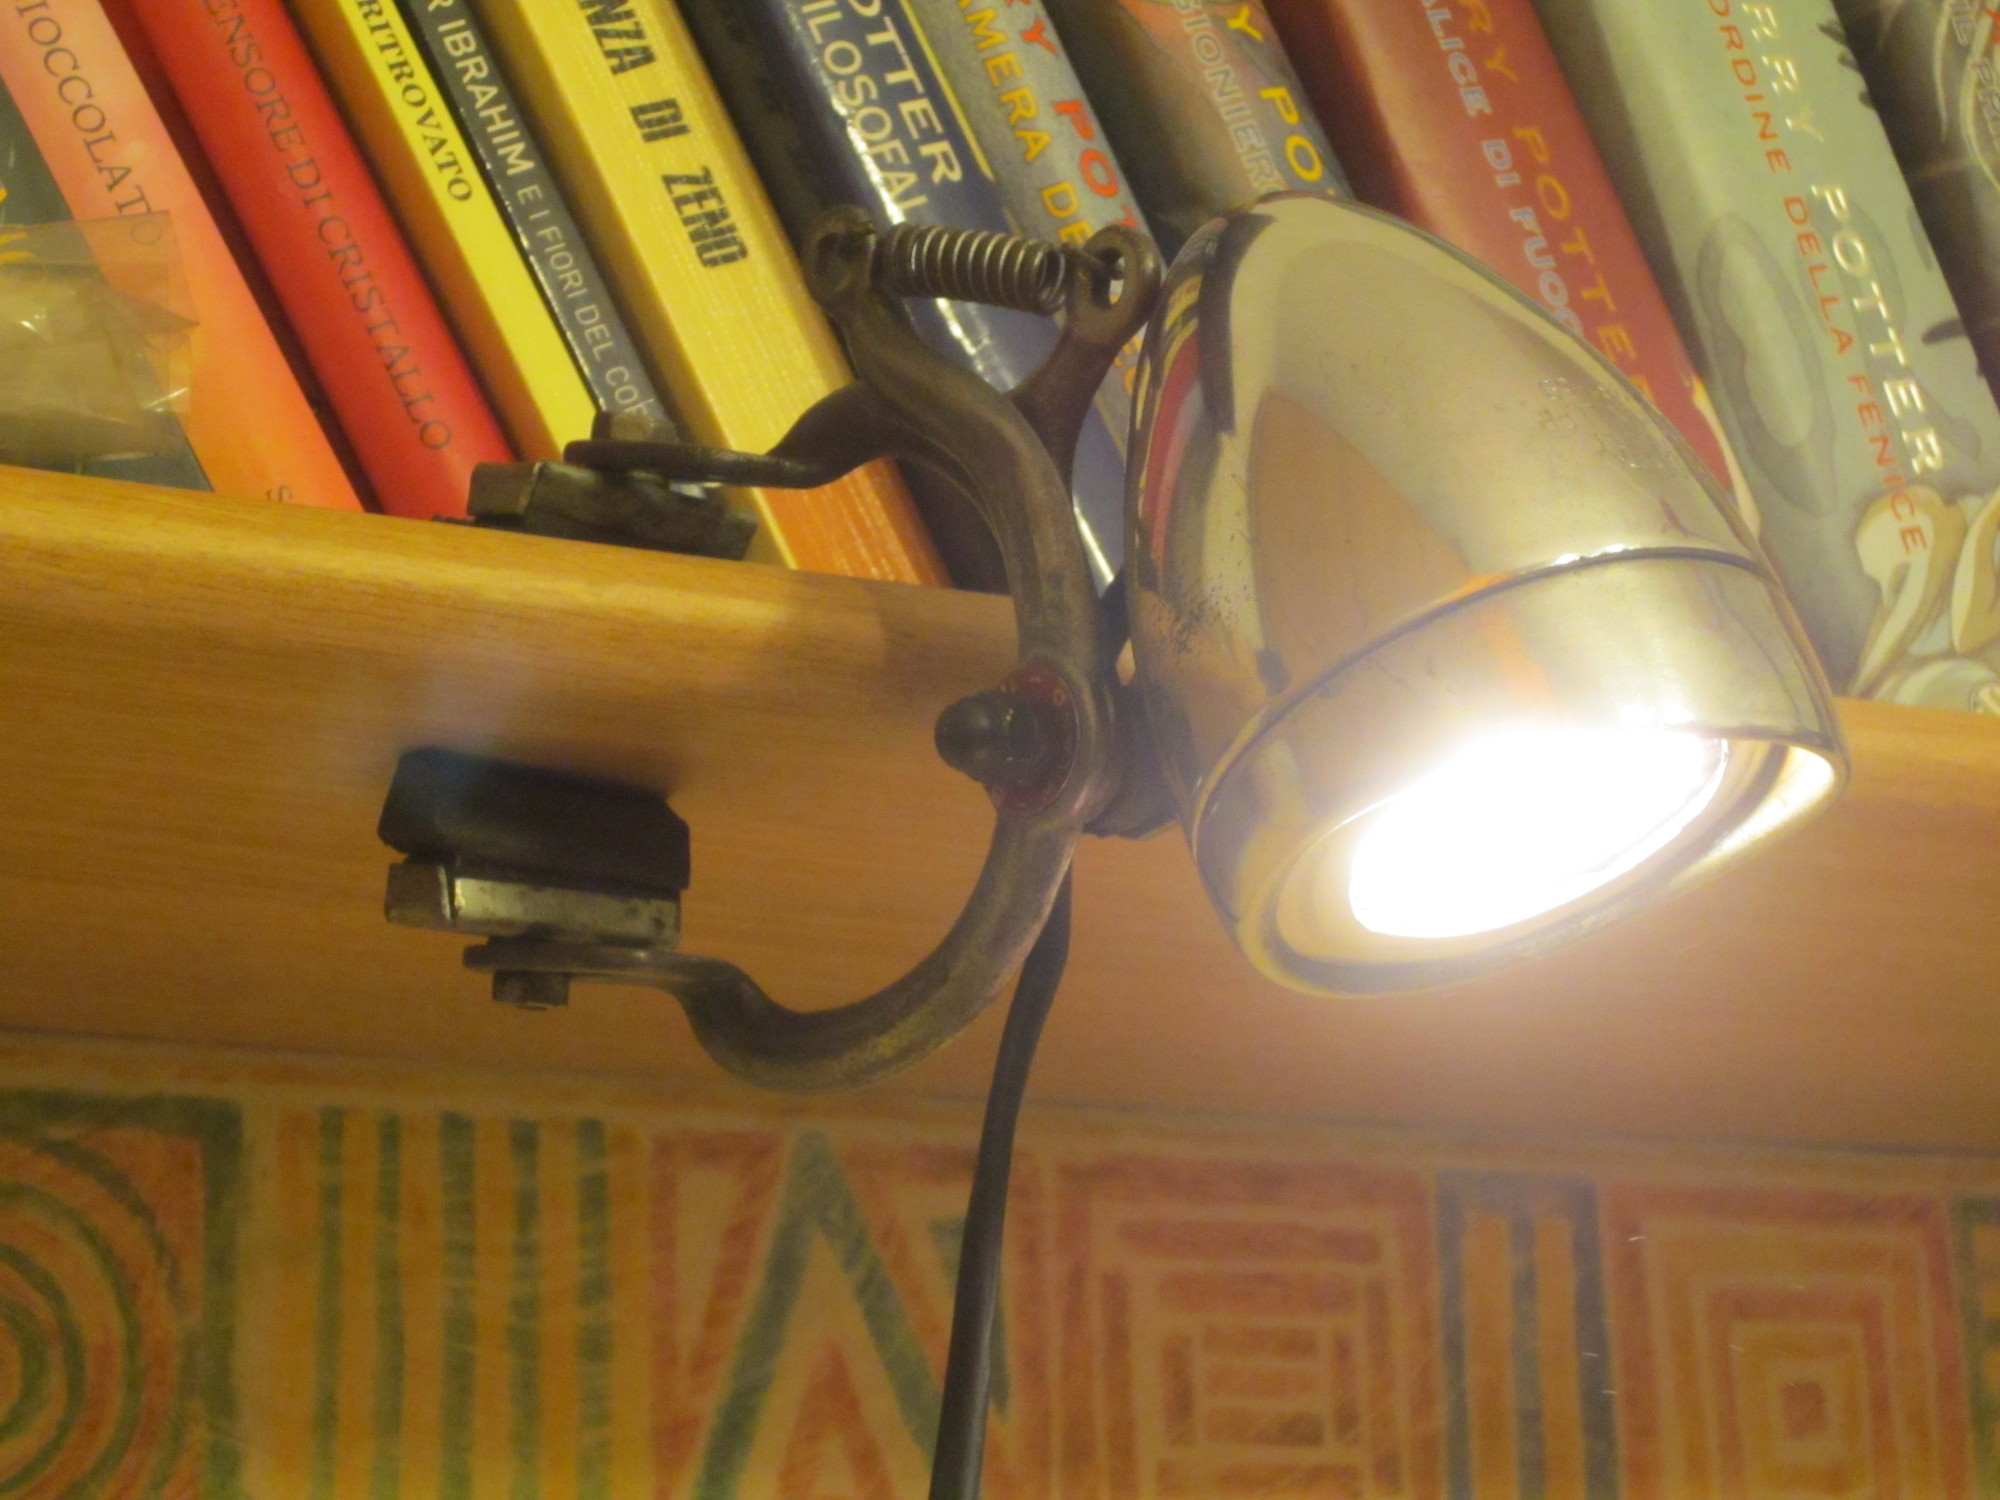 Bicycle headlight shelf lamp